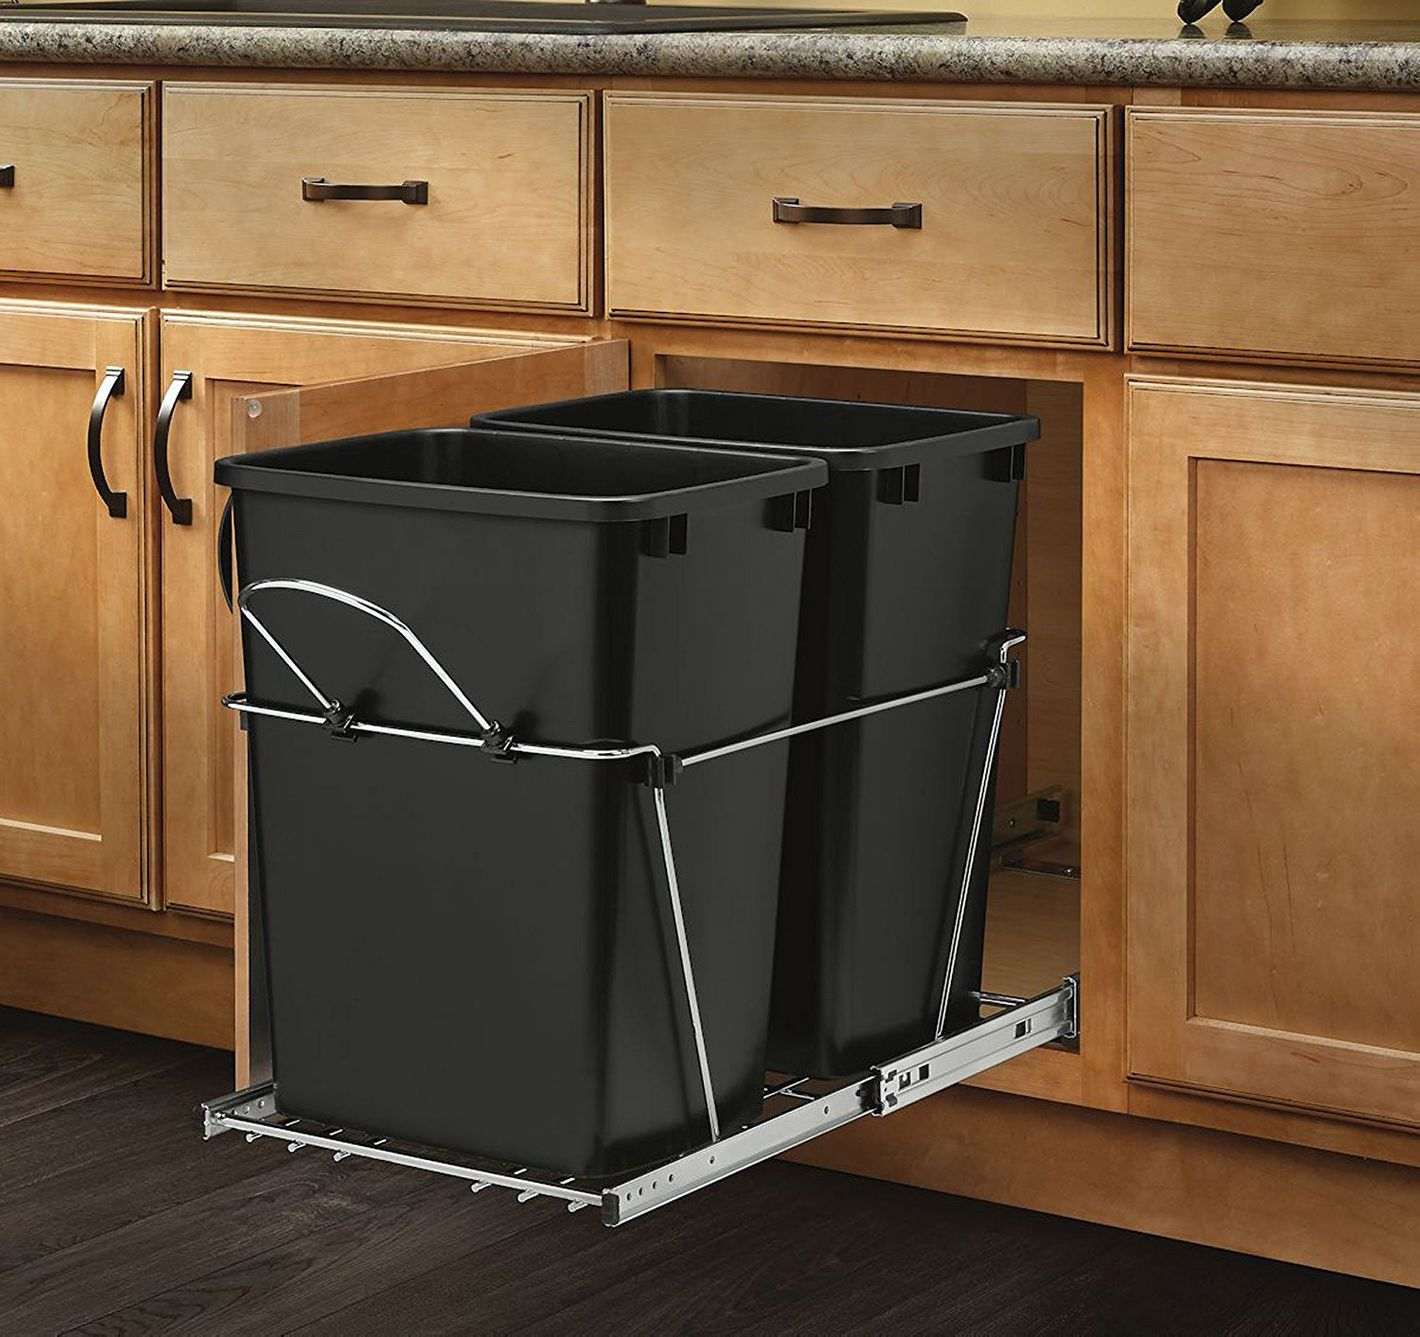 Rev-A-Shelf — RV-18KD-18C S — Double 35-Quart Pull-Out Black and Chrome Waste Container